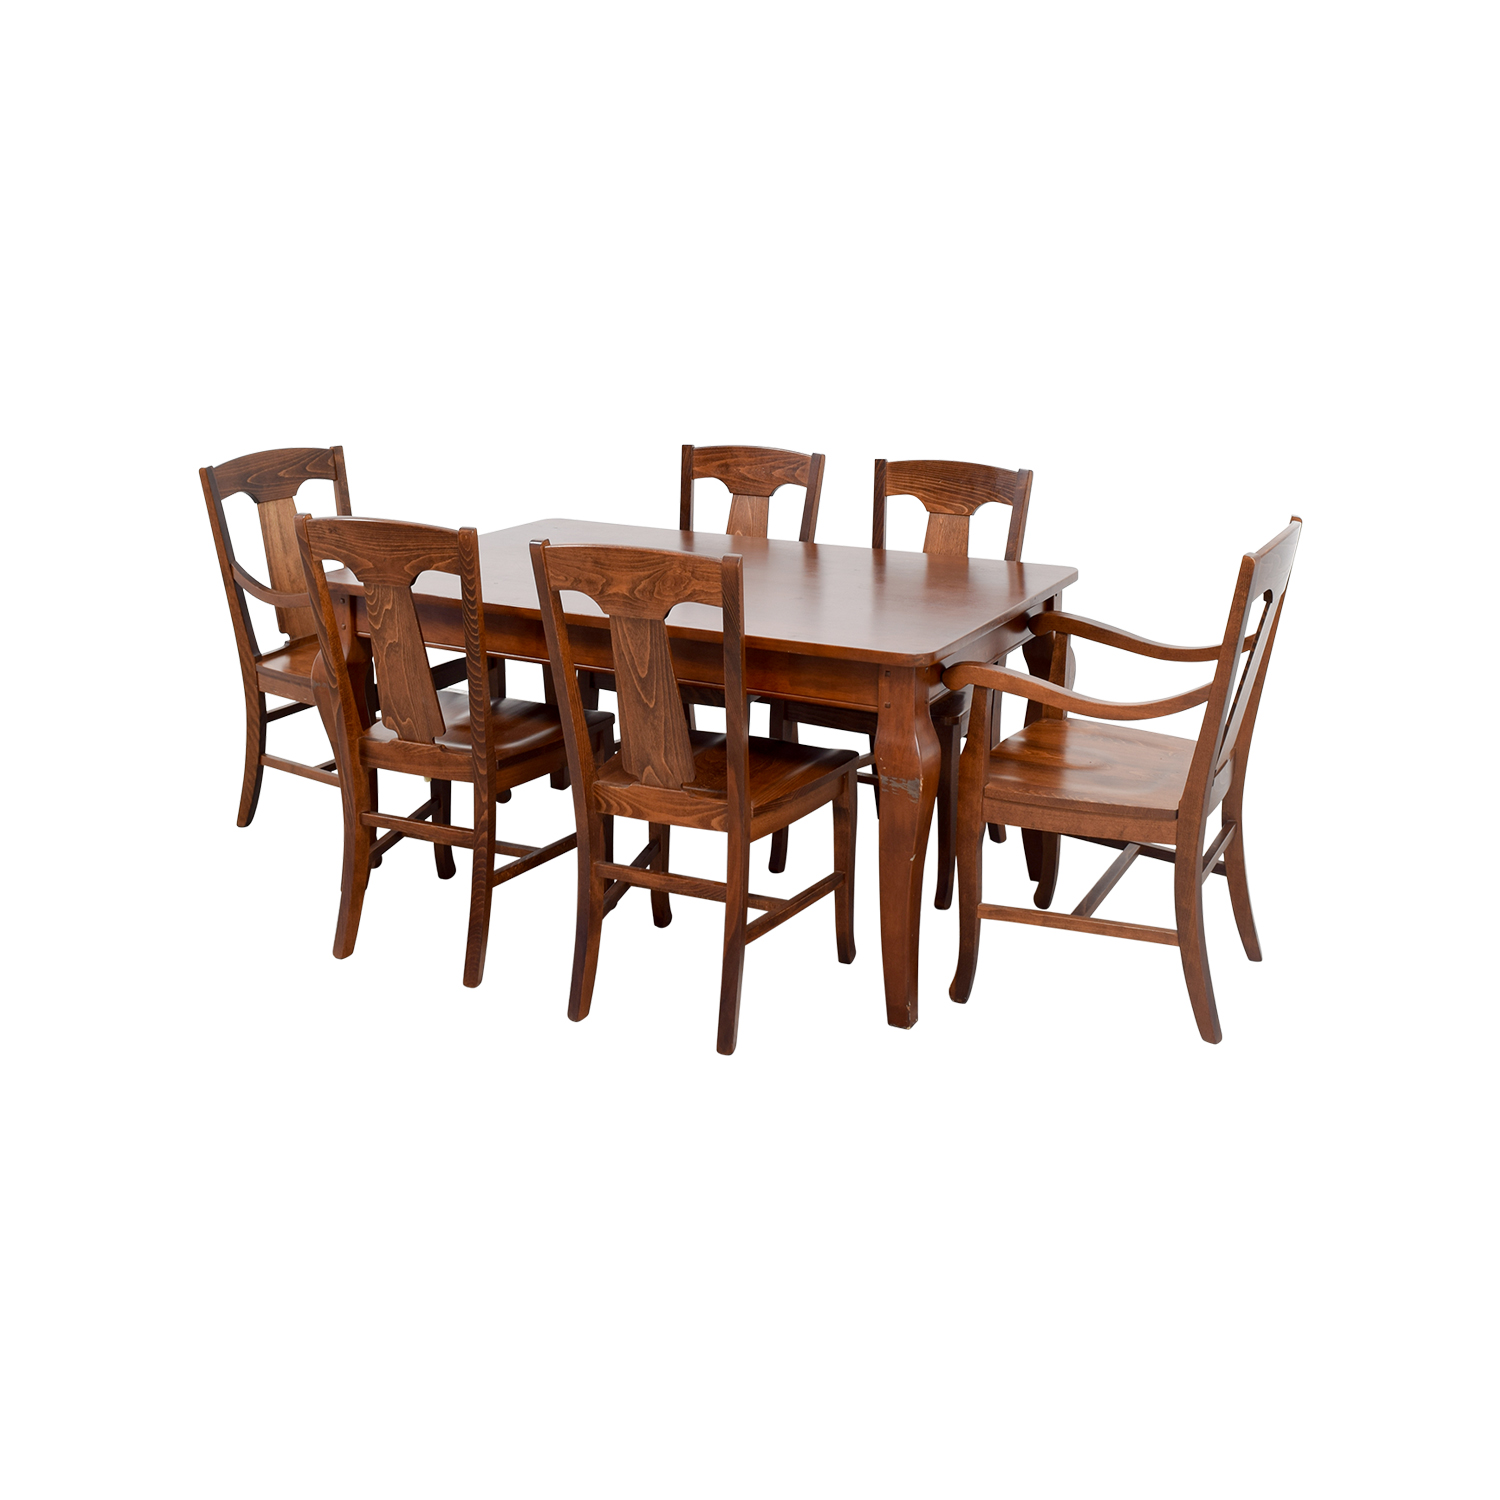 84% OFF - Pottery Barn Pottery Barn Dining Room Table / Tables